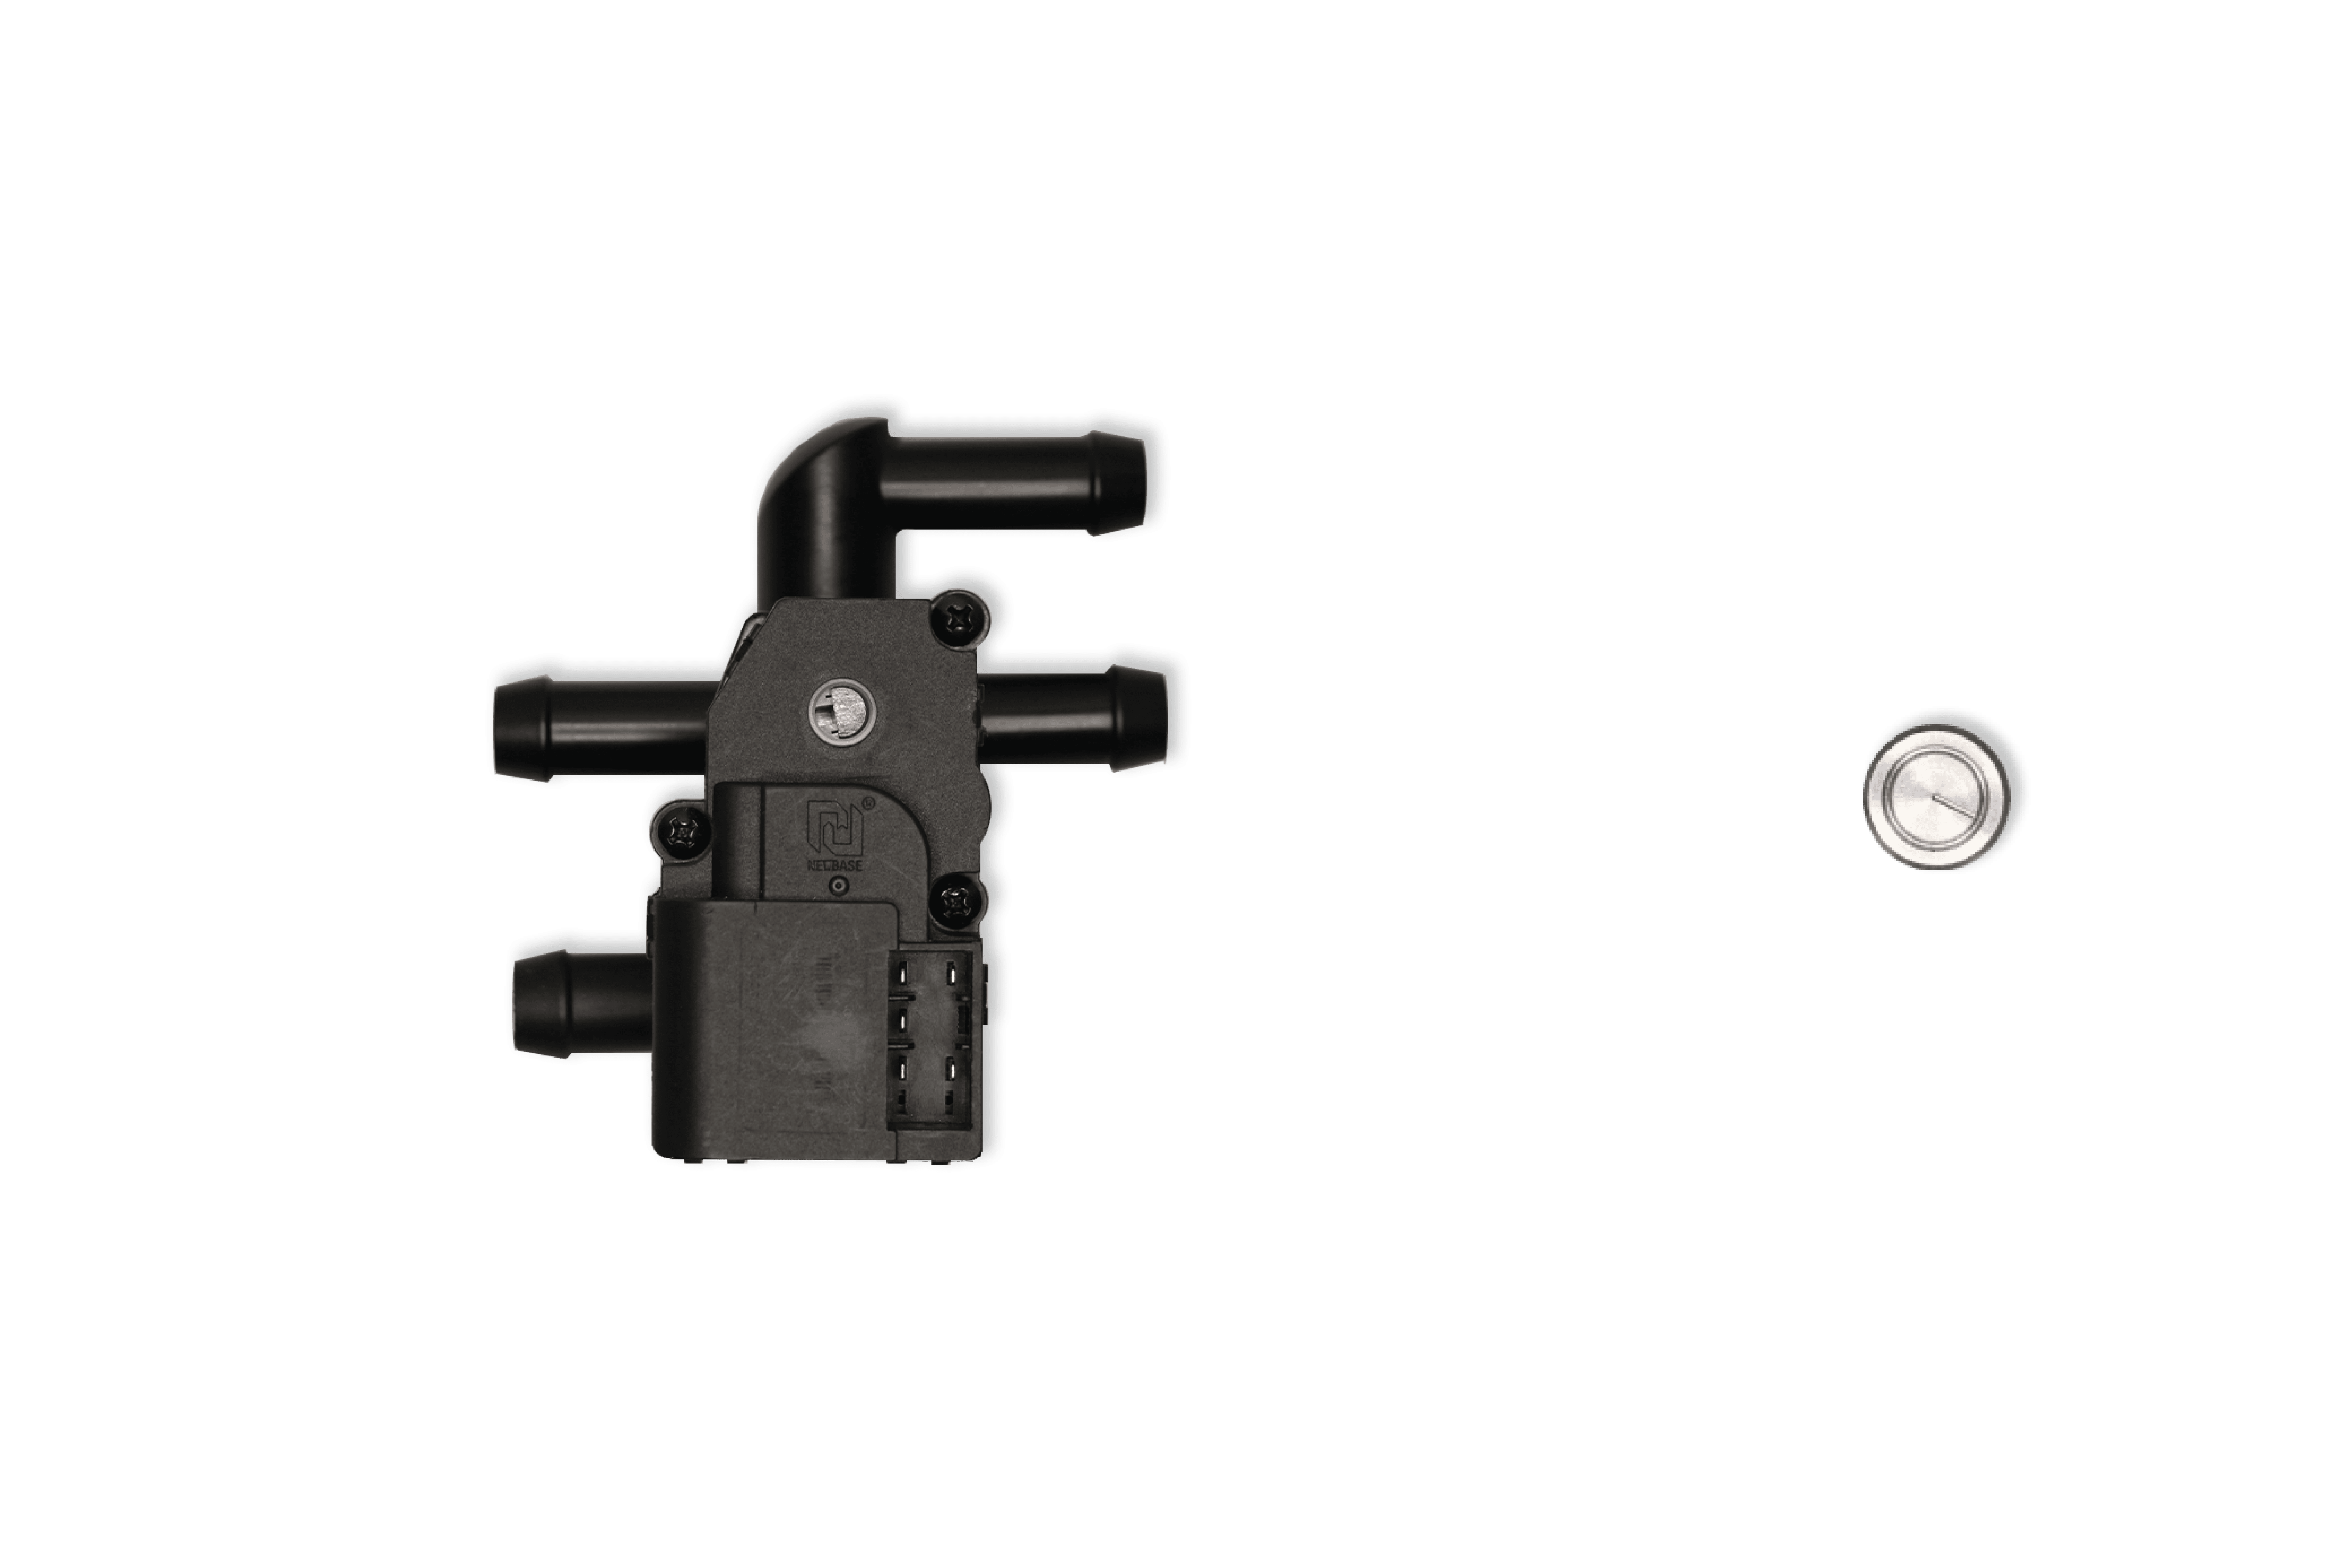 FOUR WAY WATER VALVE FOR WEB 01